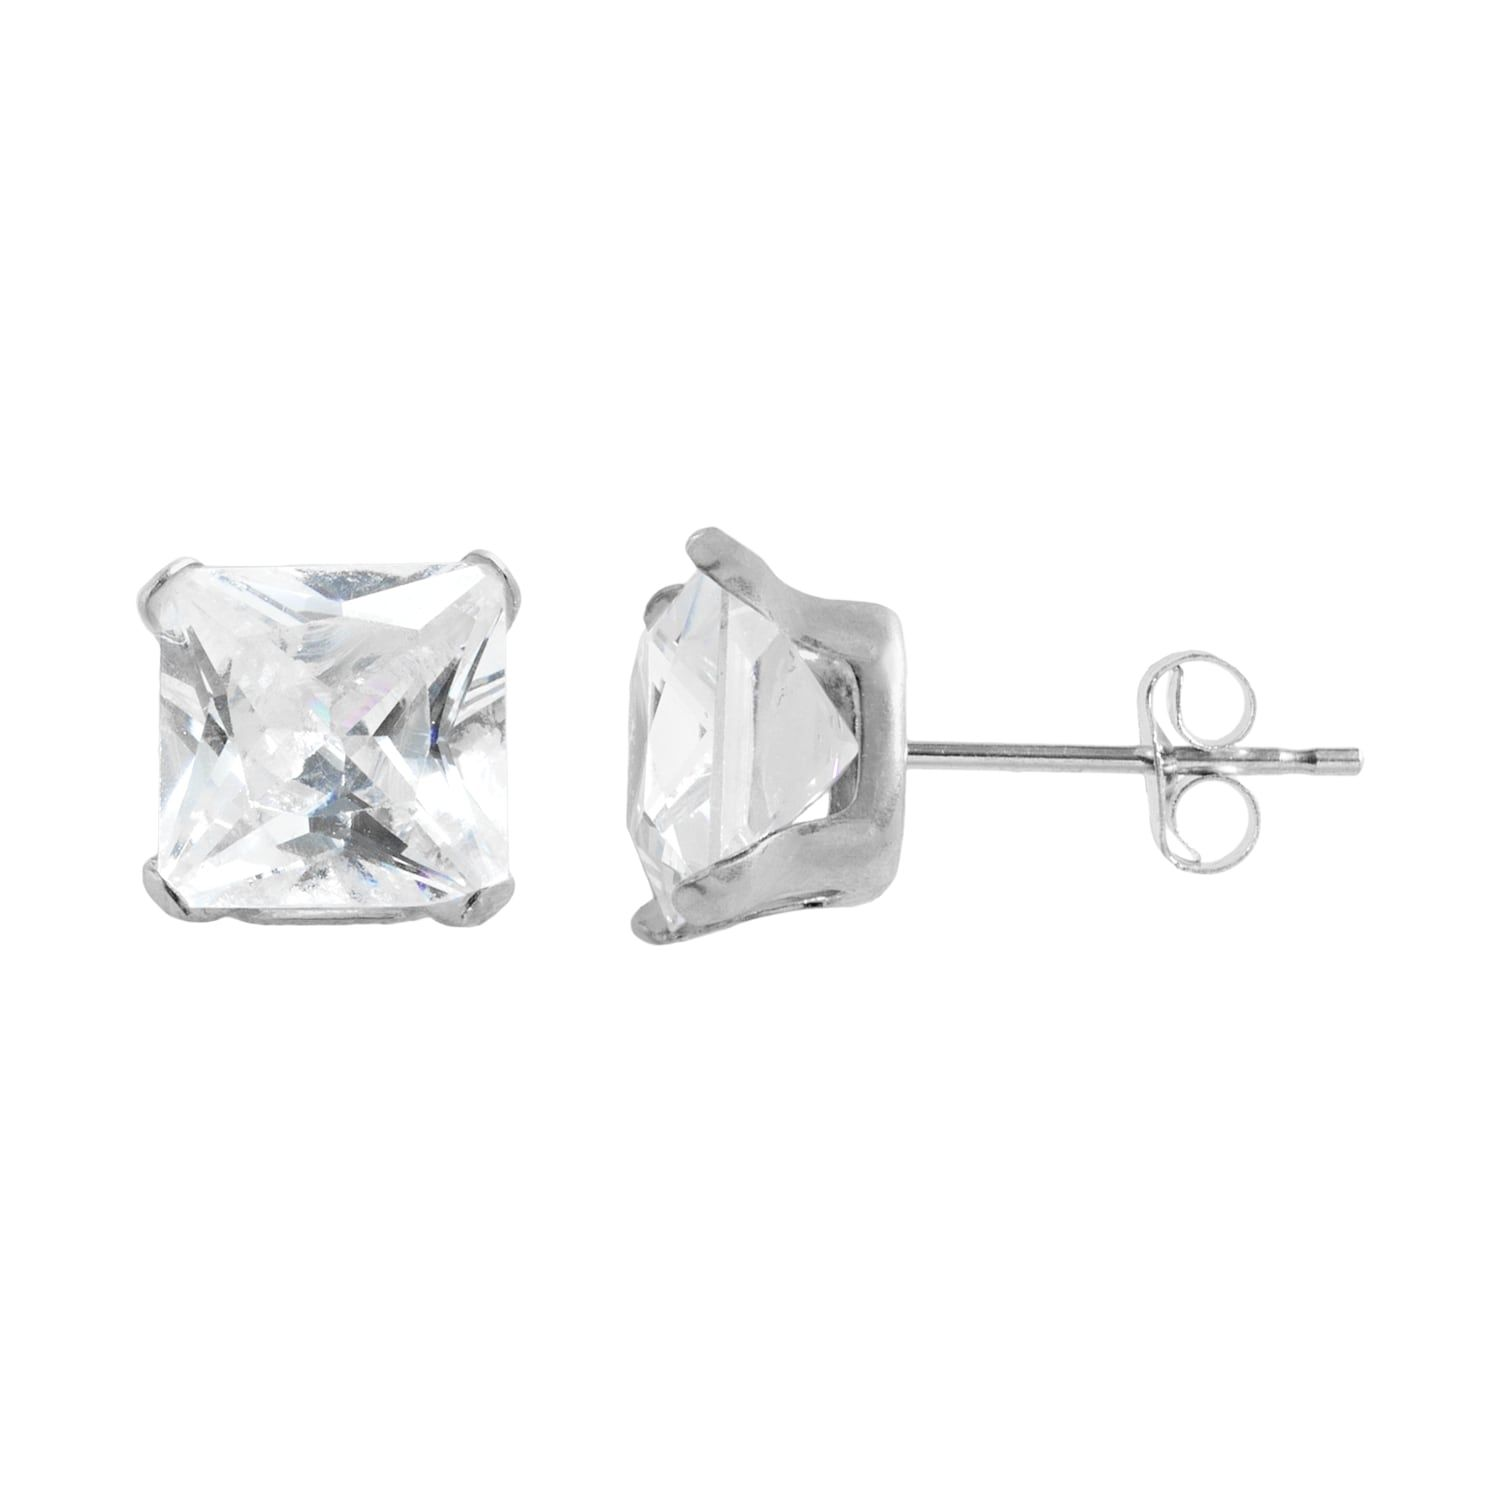 10k White Gold Cubic Zirconia Square Stud Earrings Square Earrings Studs Stud Earrings Square Stud